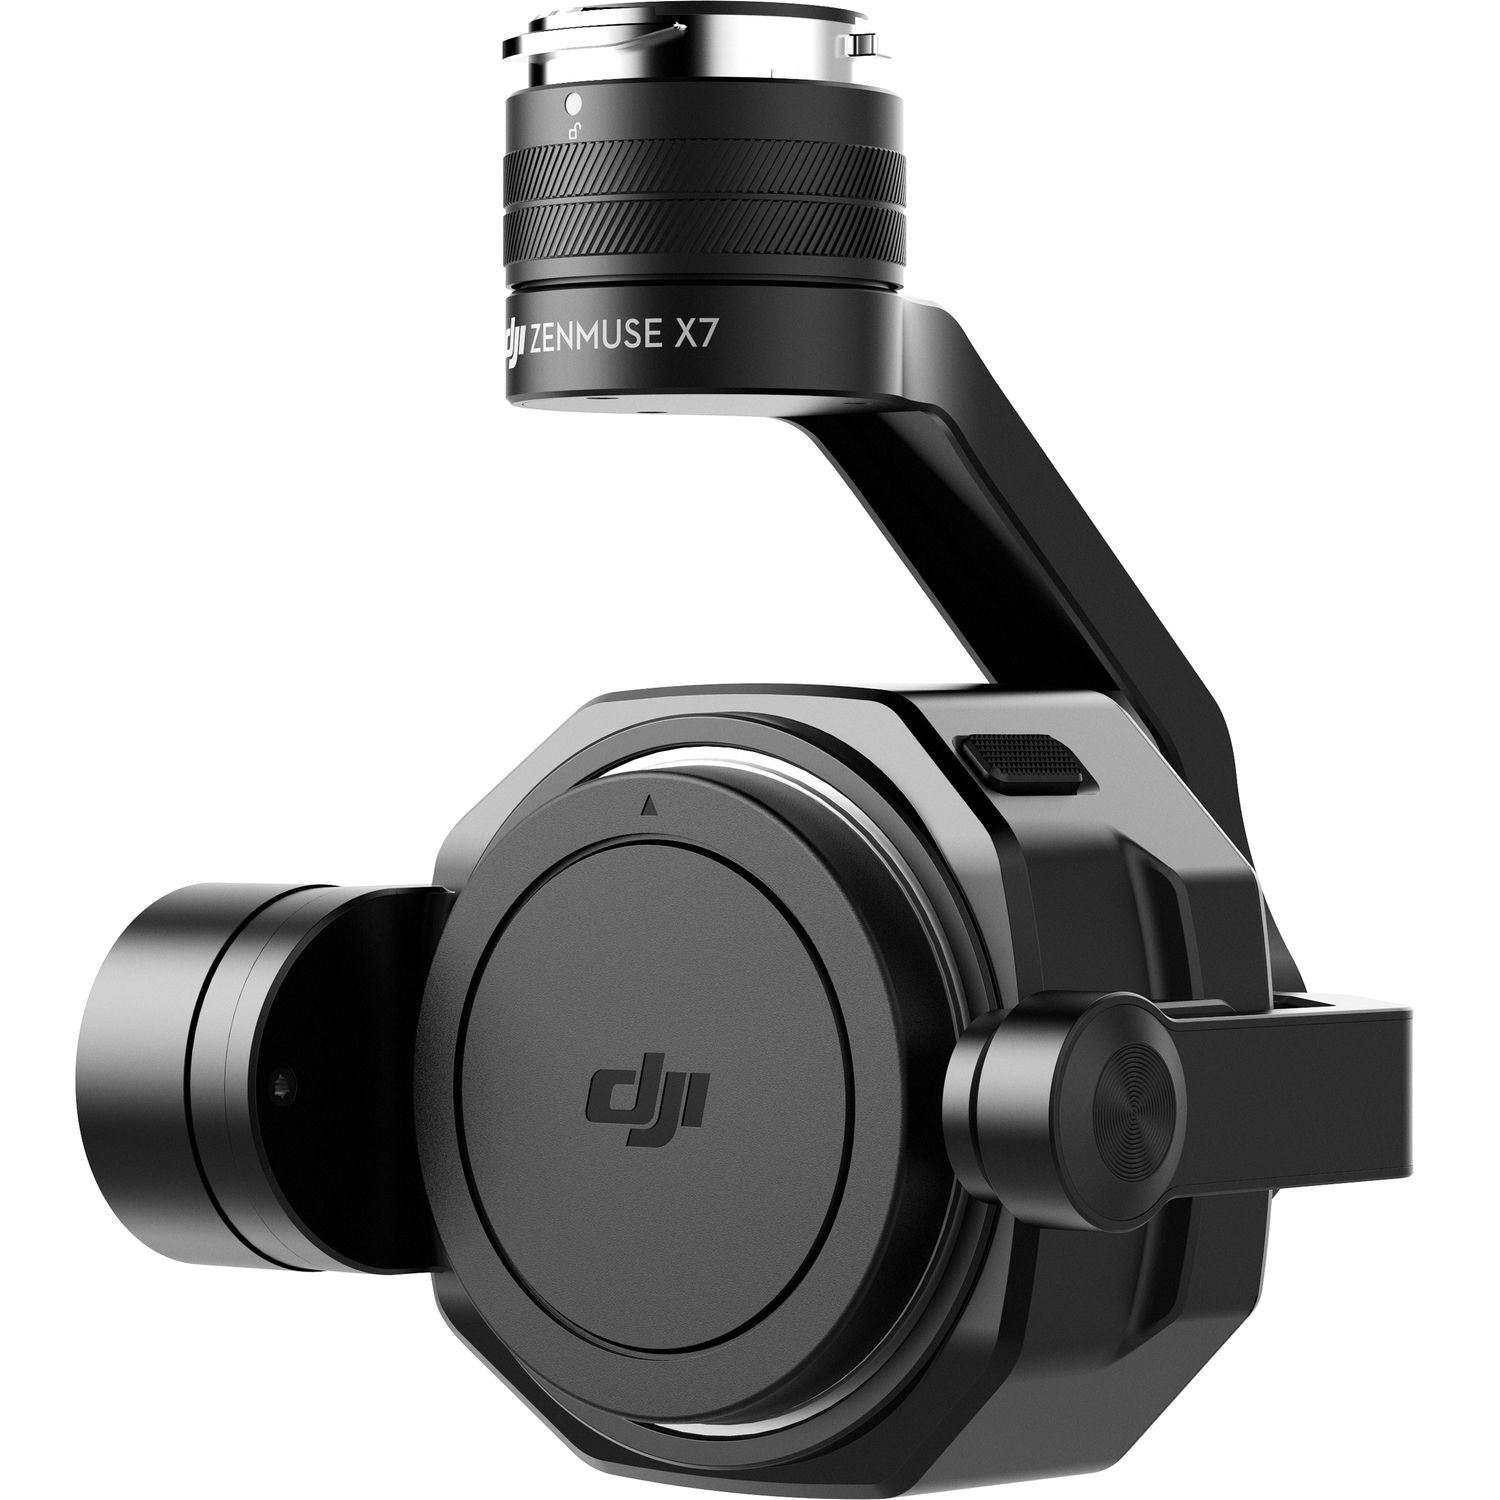 DJI Zenmuse X7 Super35 6K Cinema Camera Gimbal